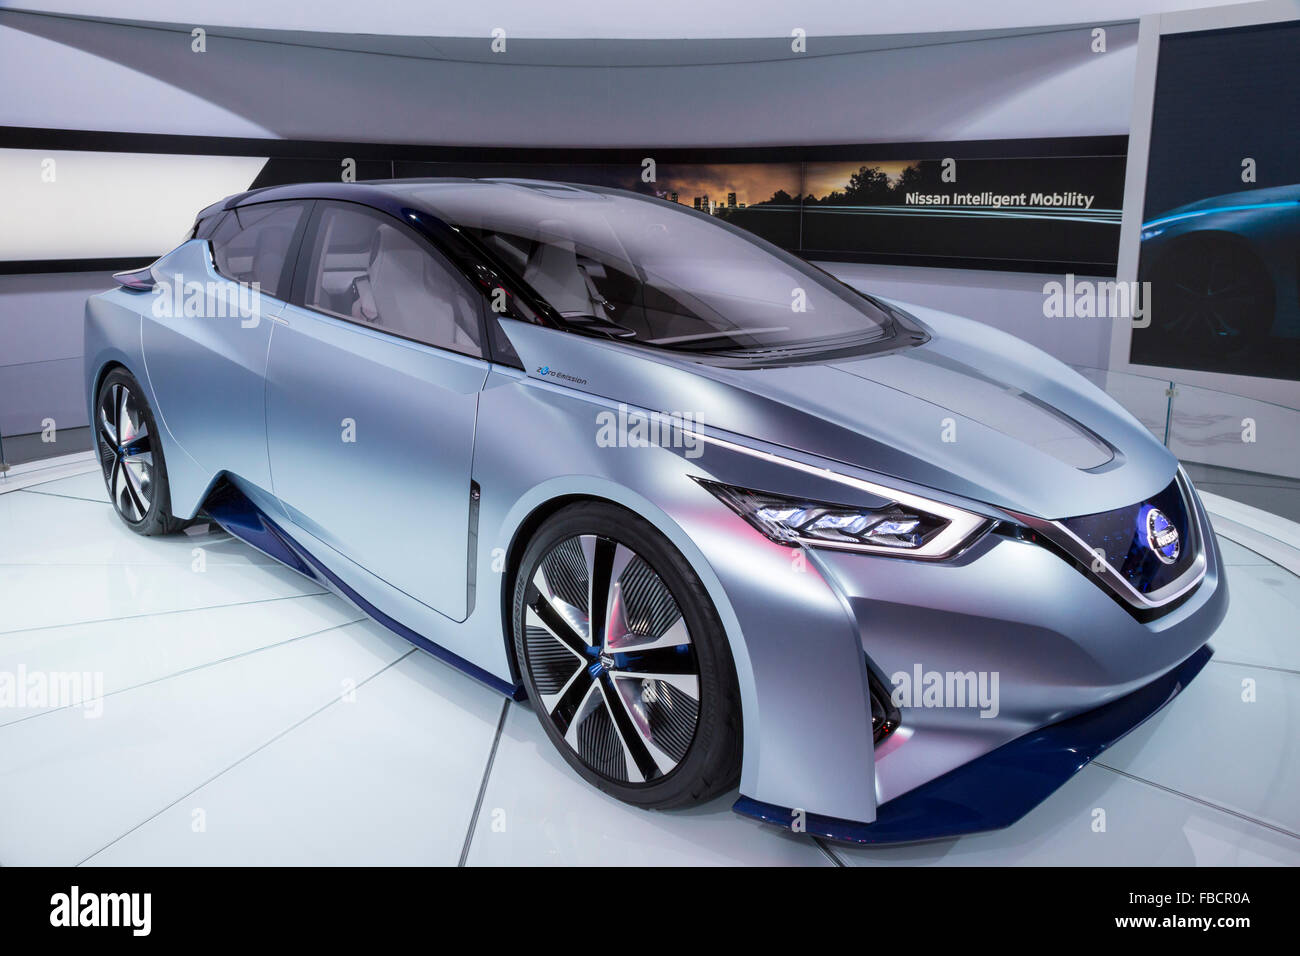 Detroit, Michigan - Nissan's IDS concept electric car on display at the North American International Auto Show. - Stock Image